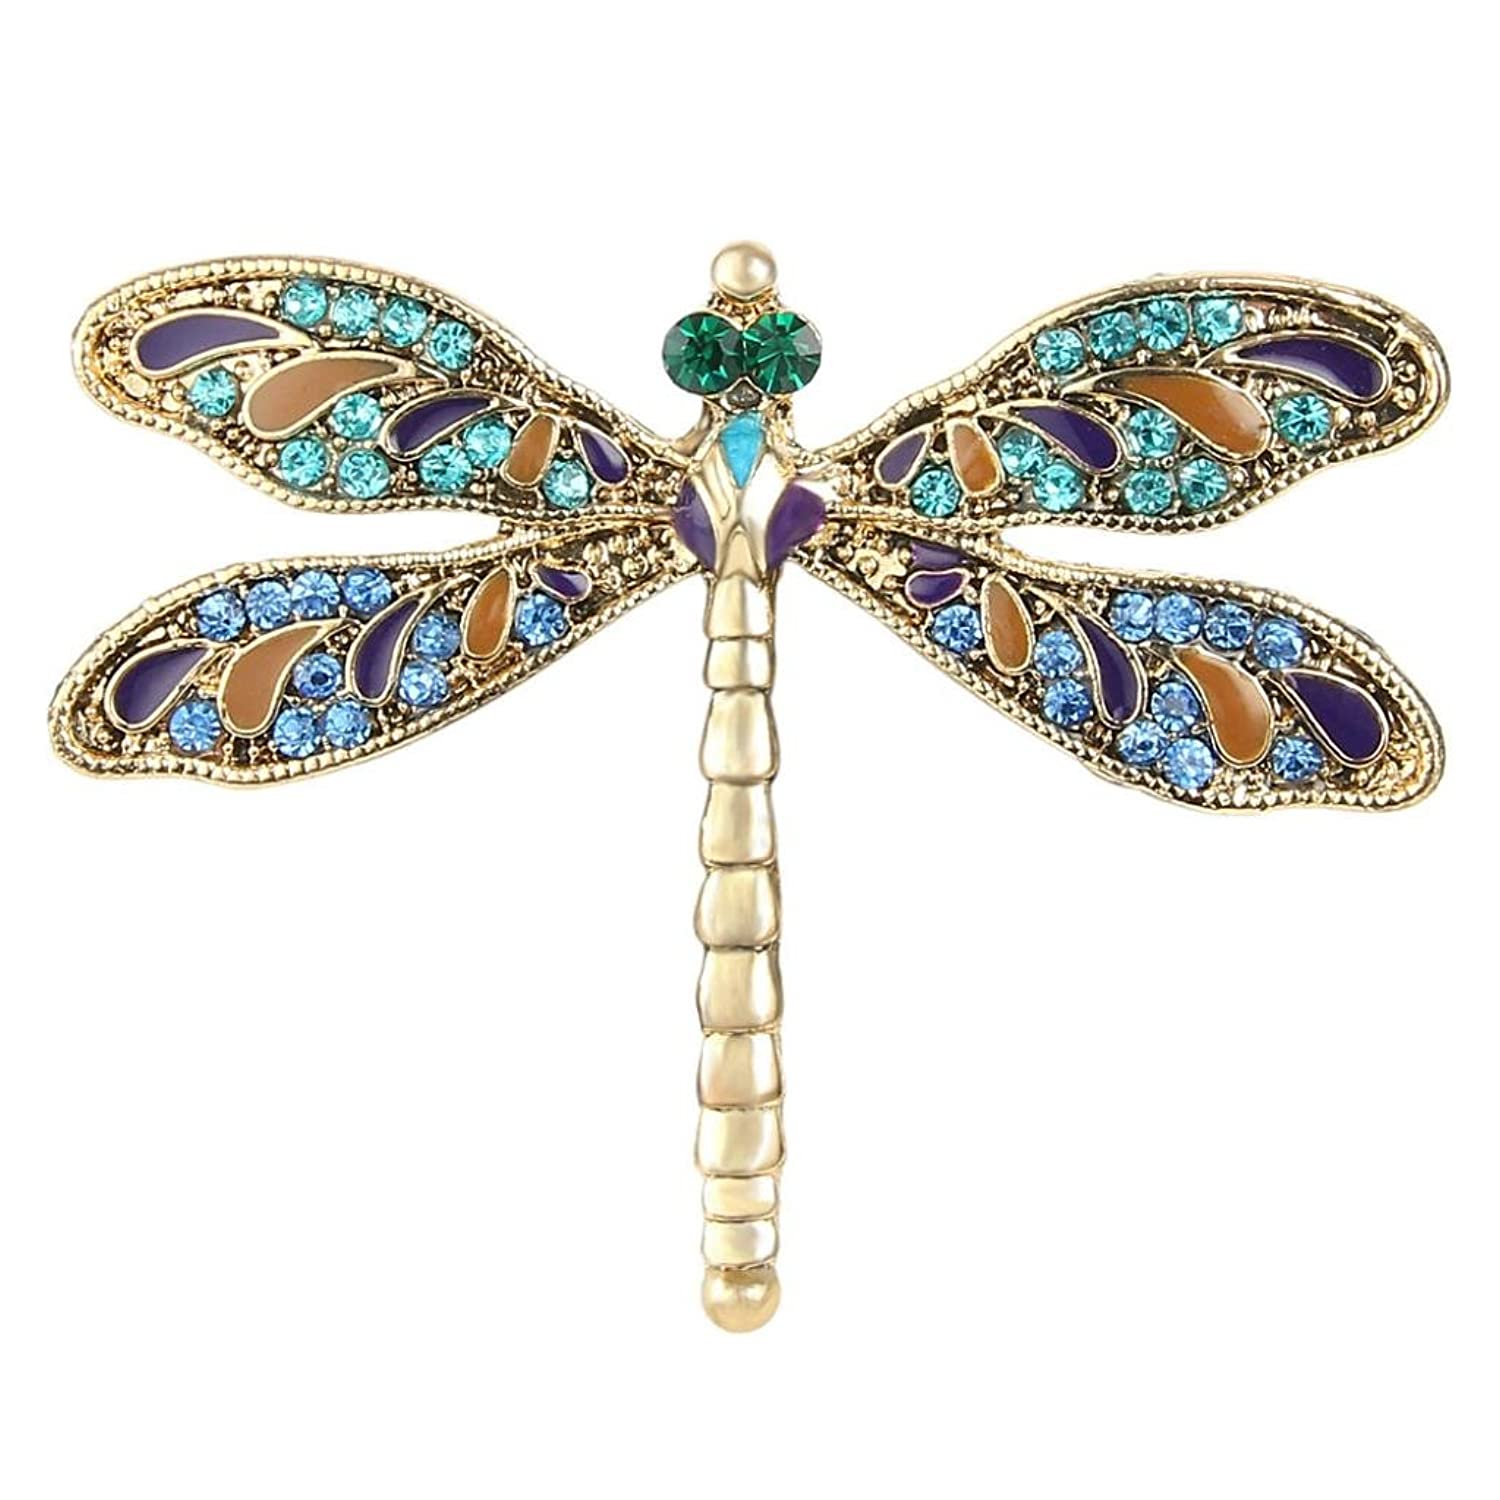 EVER FAITH Austrian Crystal Enamel Vintage Inspired Dragonfly Insect Animal Brooch Pin Gold-Tone